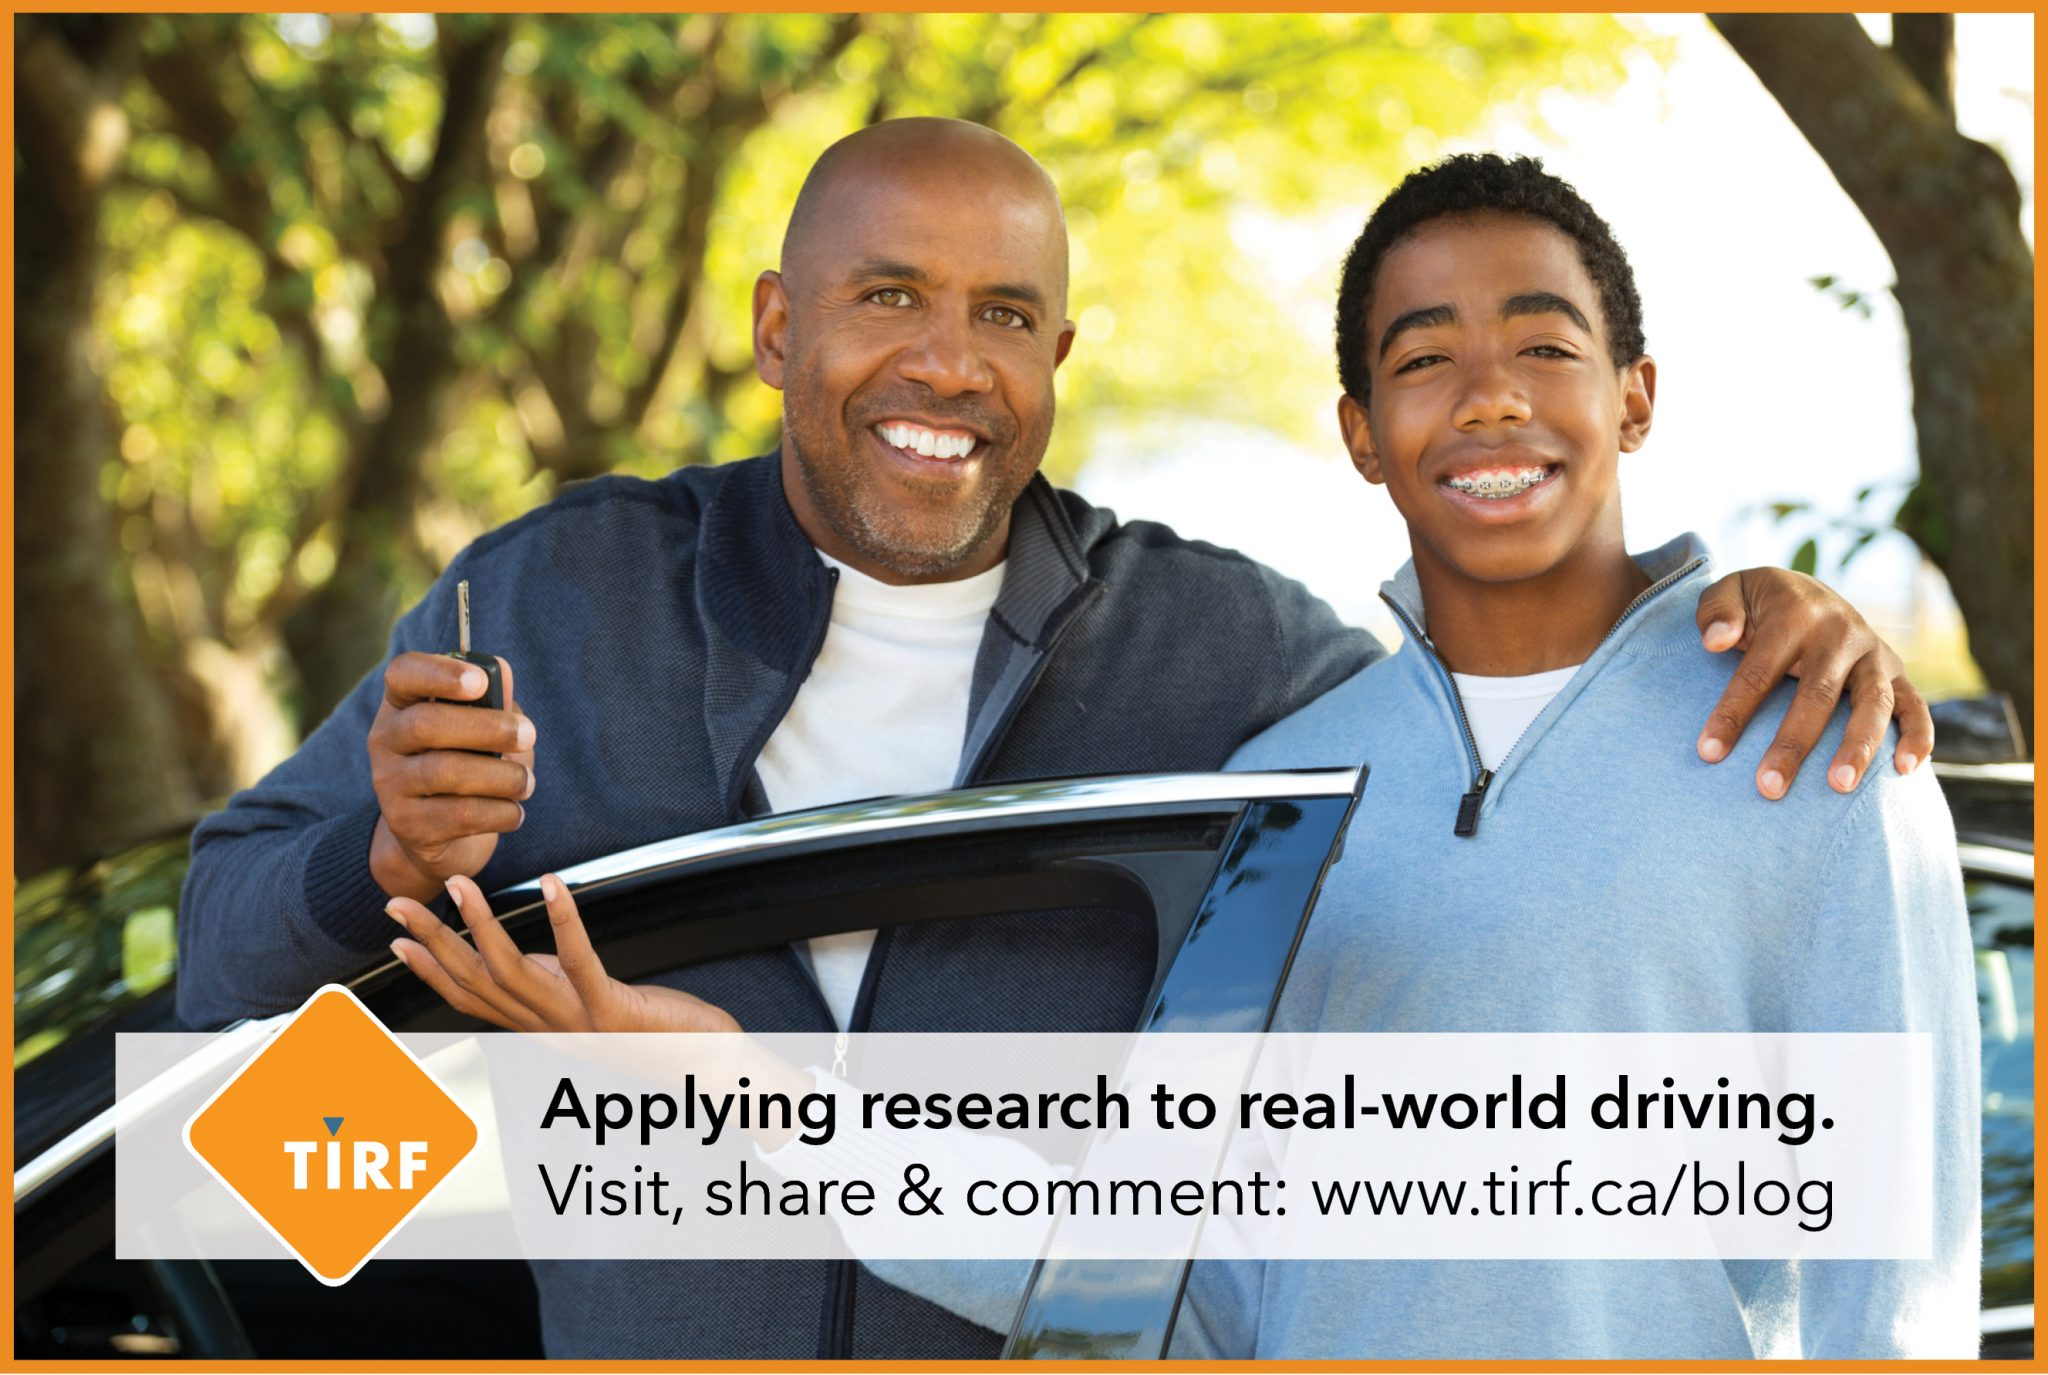 Teen Driver Training, Licensing & Testing During COVID-19: How Parents Can Help | Traffic Injury Research Foundation